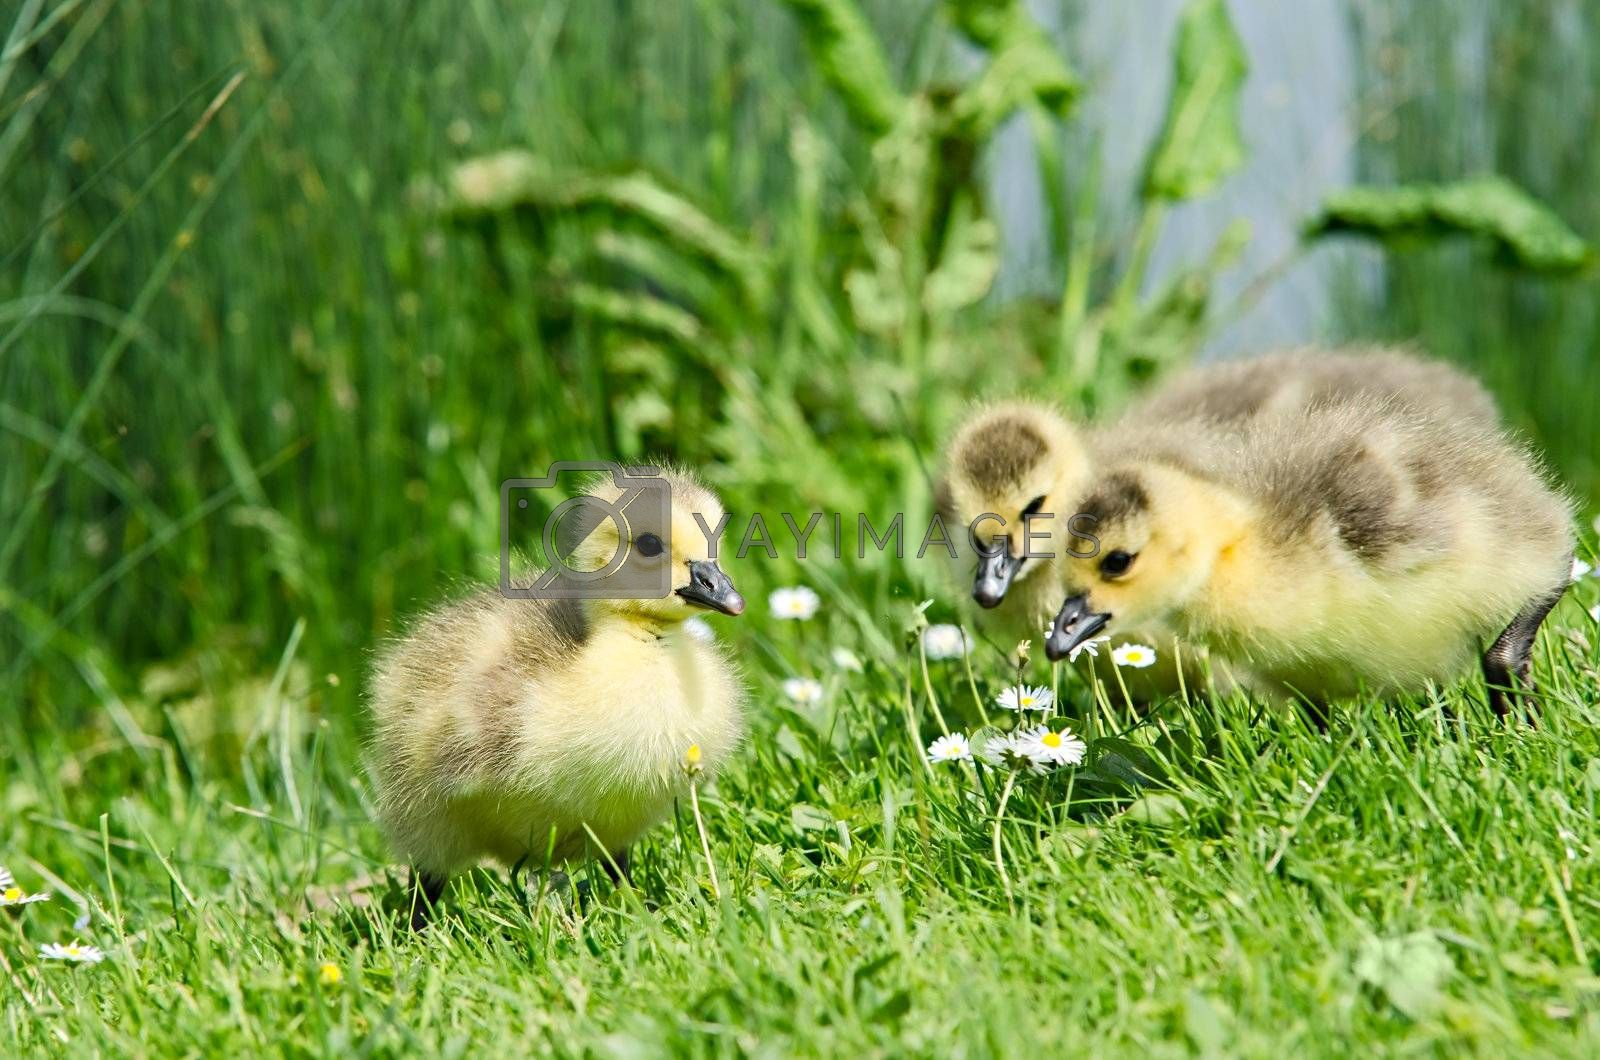 3 geese chicks enjoying the first spring in grass